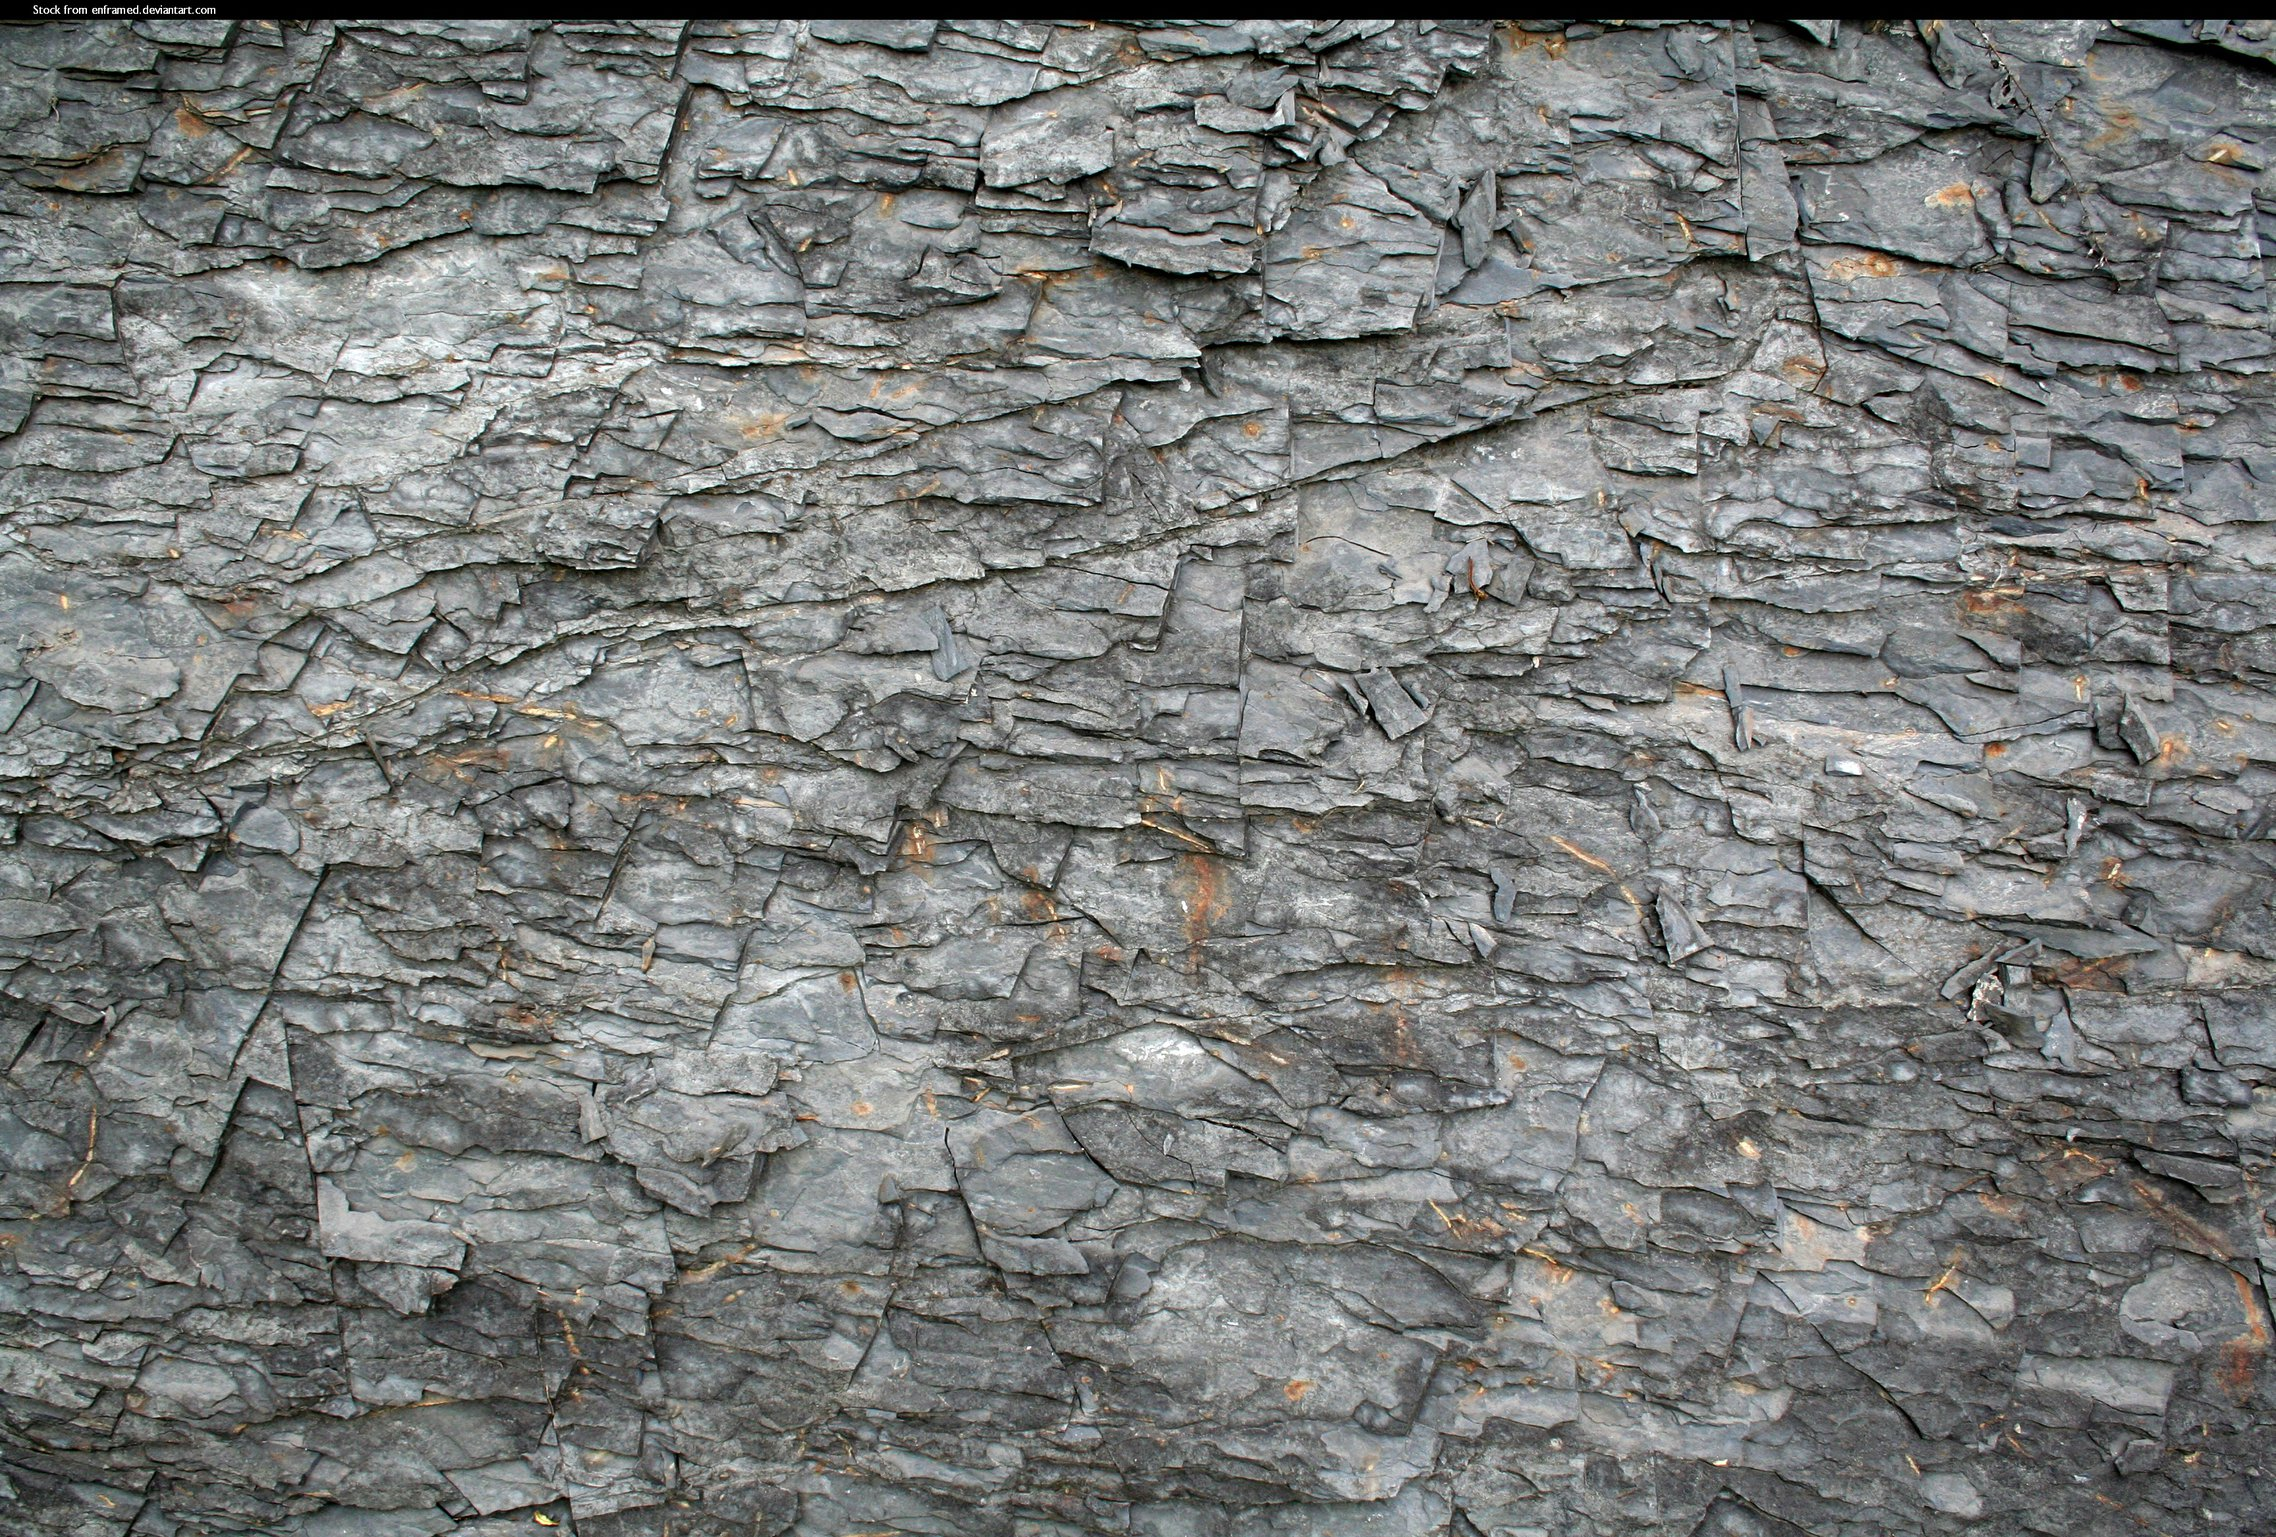 stone texture l1 by enframed 2276x1537